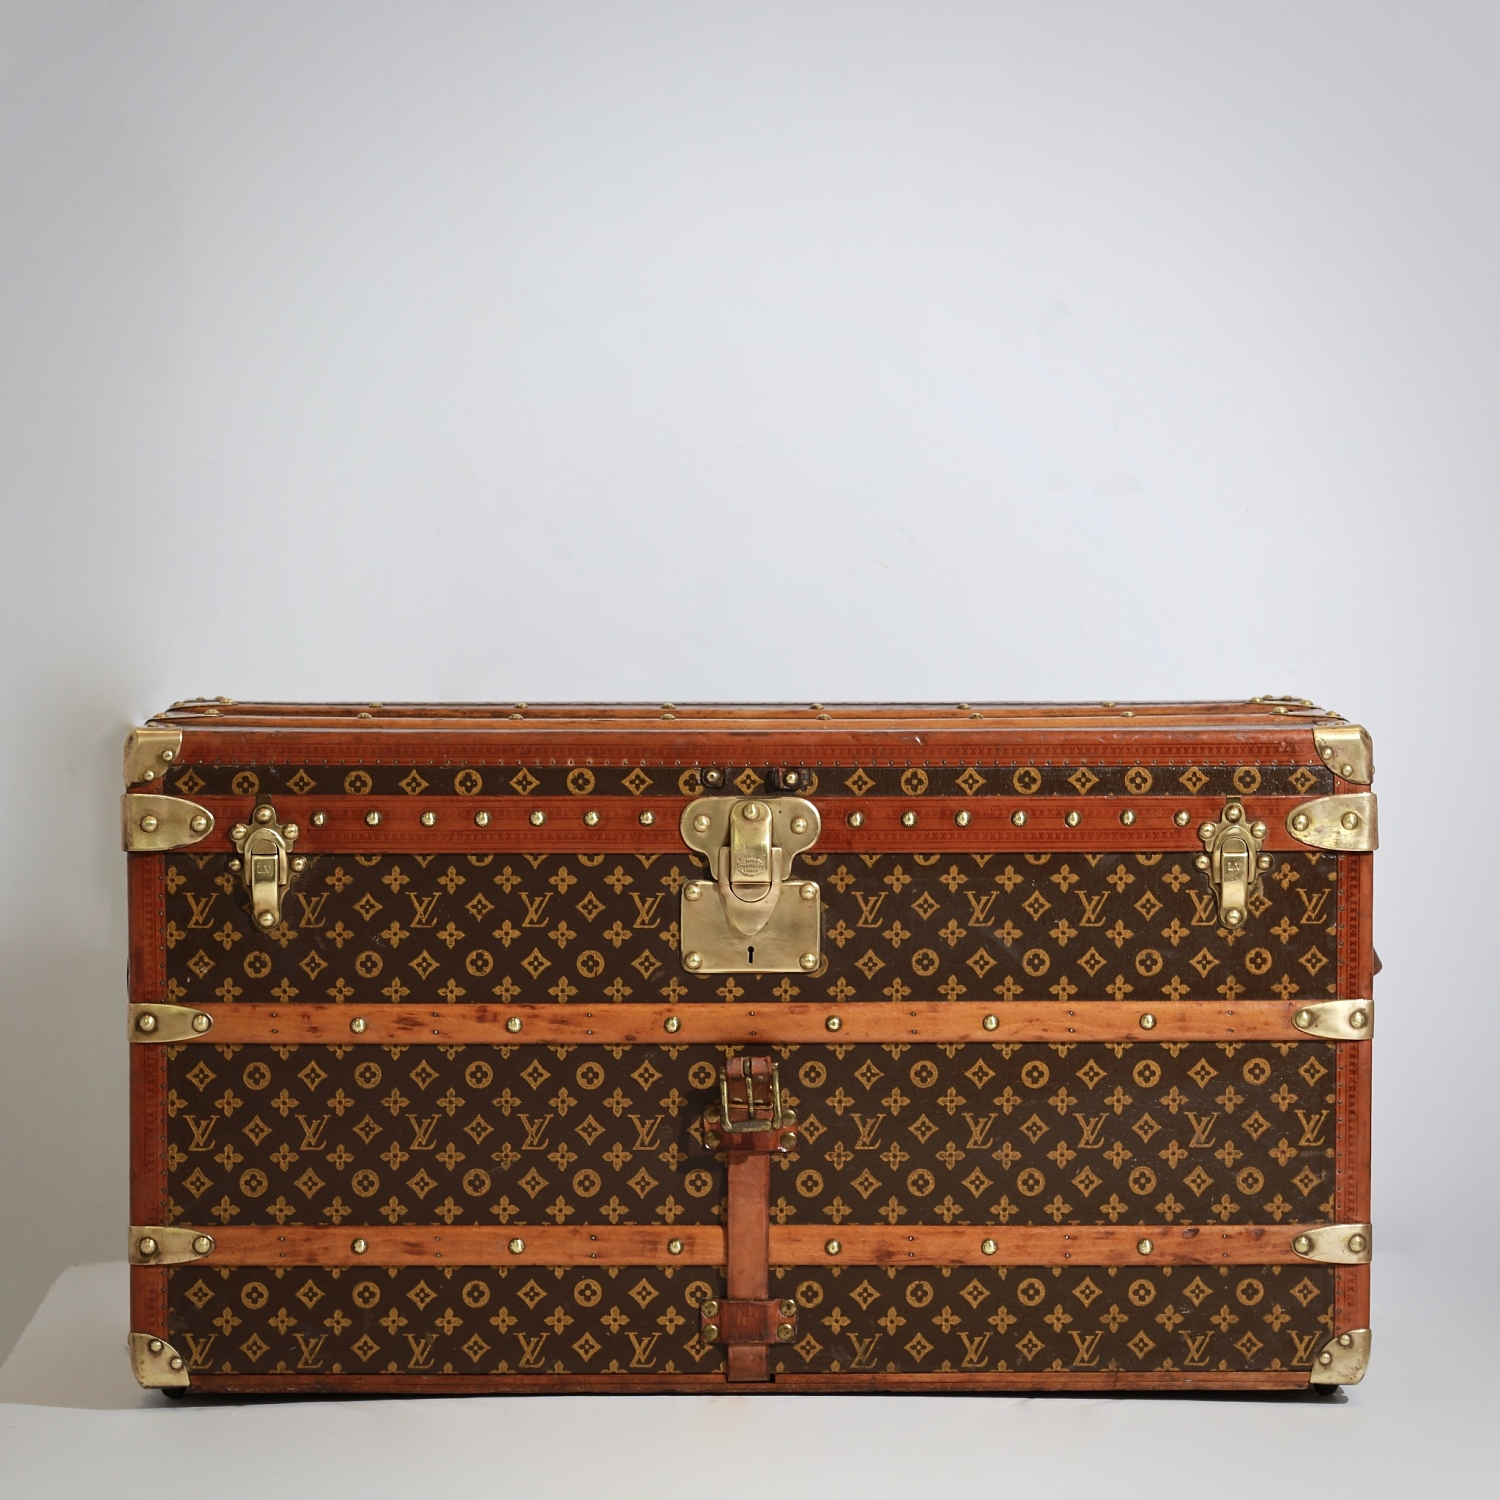 the-well-traveled-trunk-louis-vuitton-thumbnail-product-5681